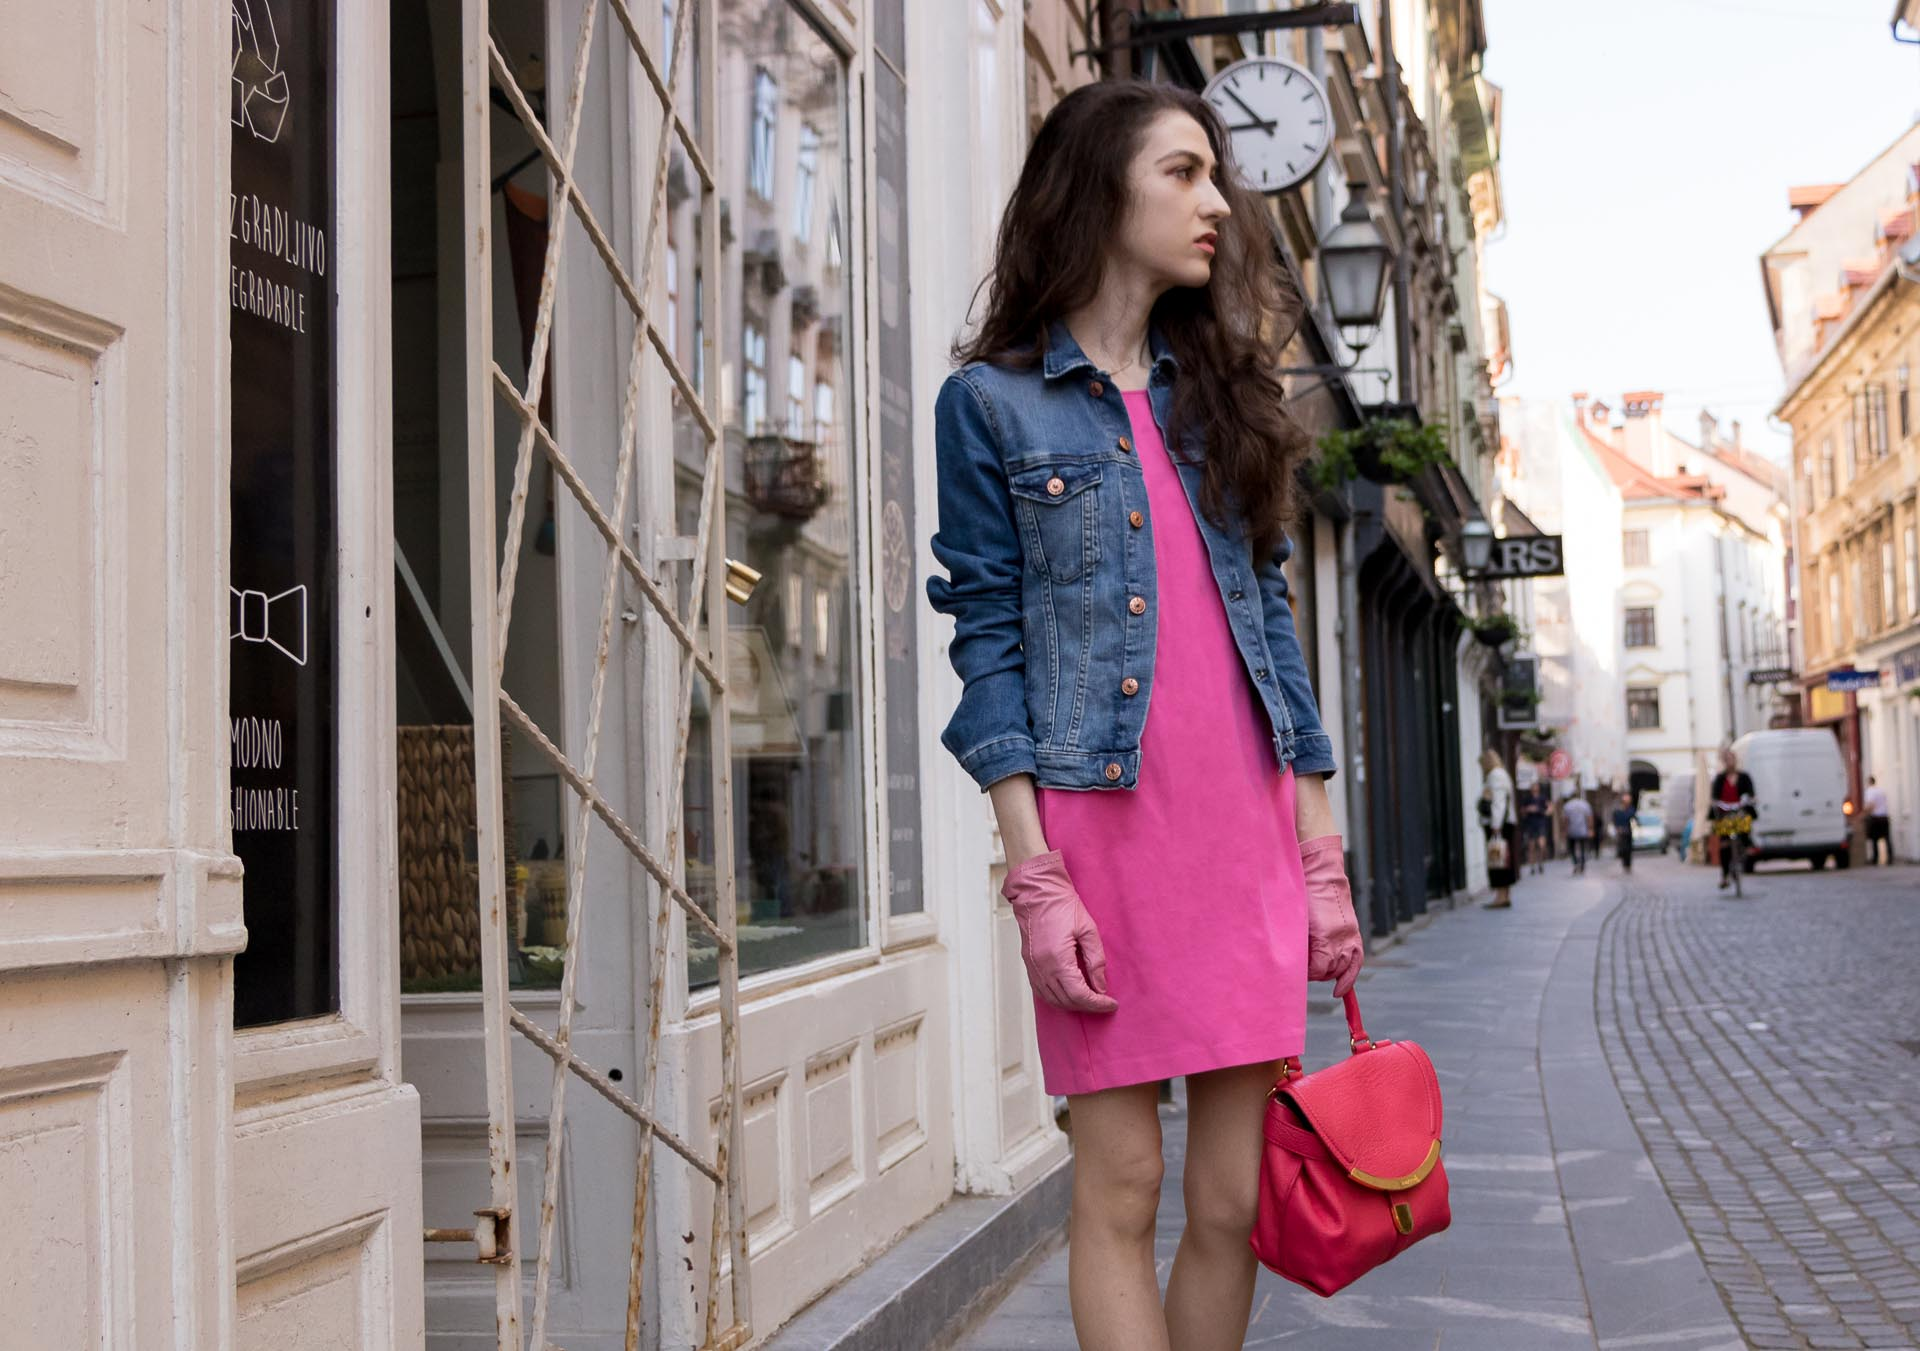 Veronika Lipar Fashion Blogger of Brunette from Wall Street dressed in H&M denim jacket, pink summer dress, blush Gianvito Rossi plexi pumps, pink Forzieri gloves, See by Chloé pink top handle bag, Adam Selman x Le Specs white cat eye Lolita sunglasses